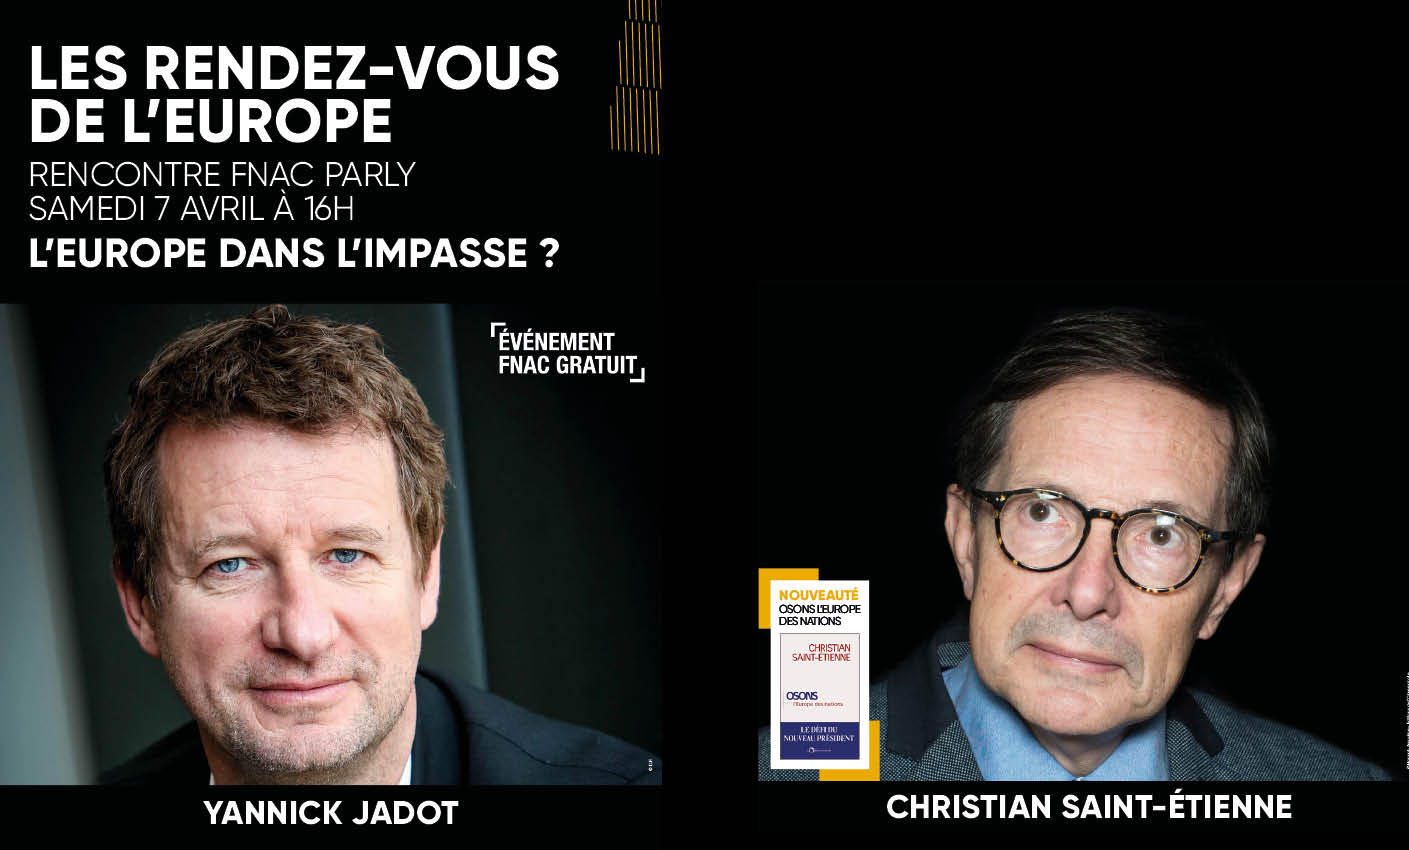 Christian rencontres Europe